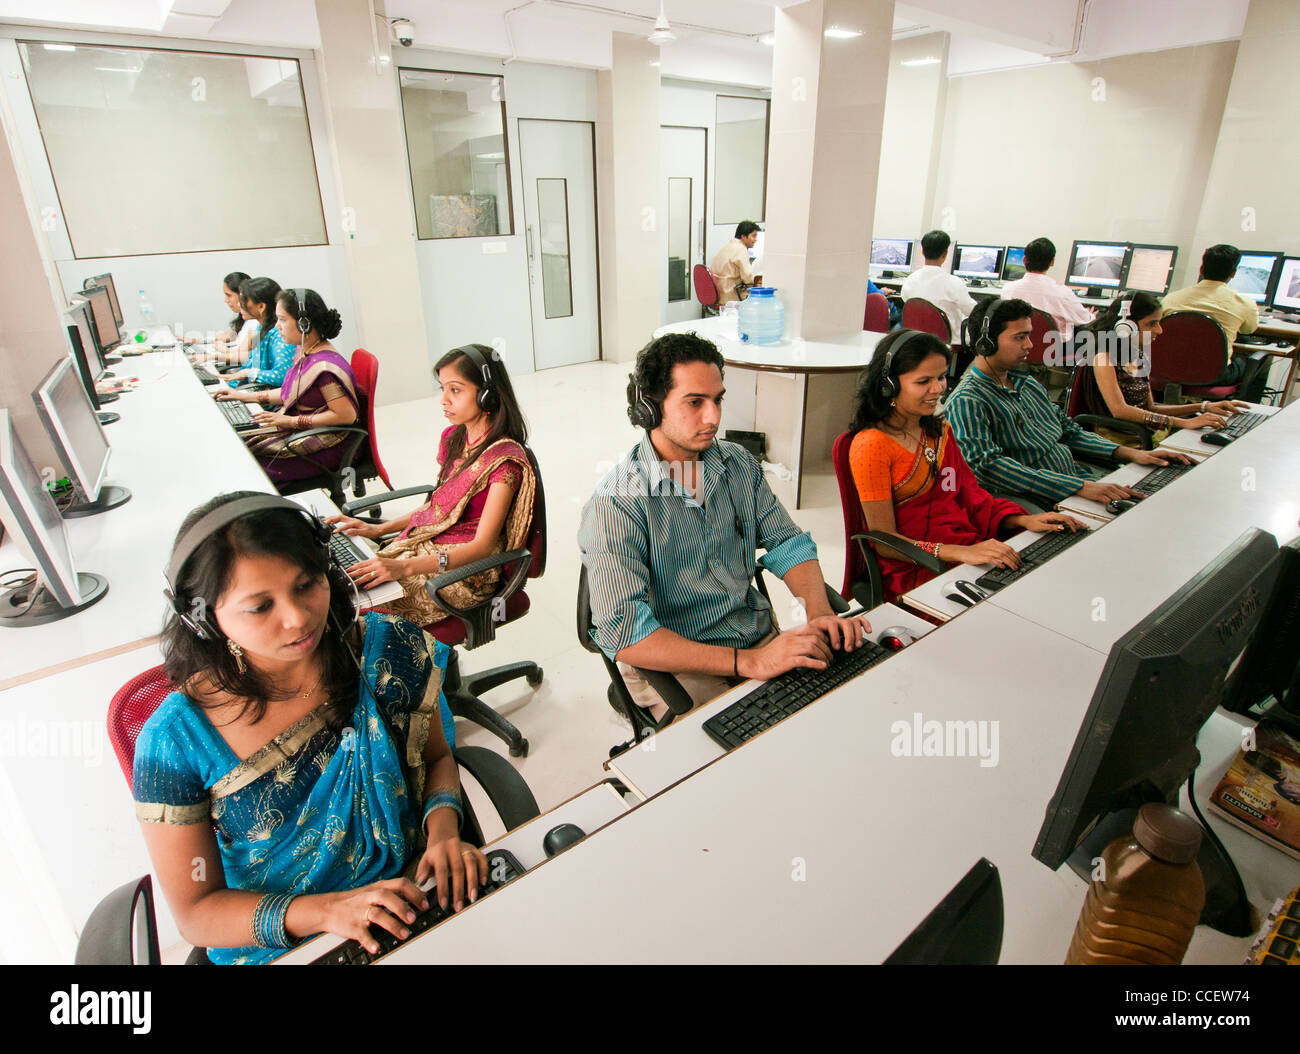 outsourcing in india A couple of decades ago, women graduating from one of the thousands of  colleges in india had limited options if they went with the more.